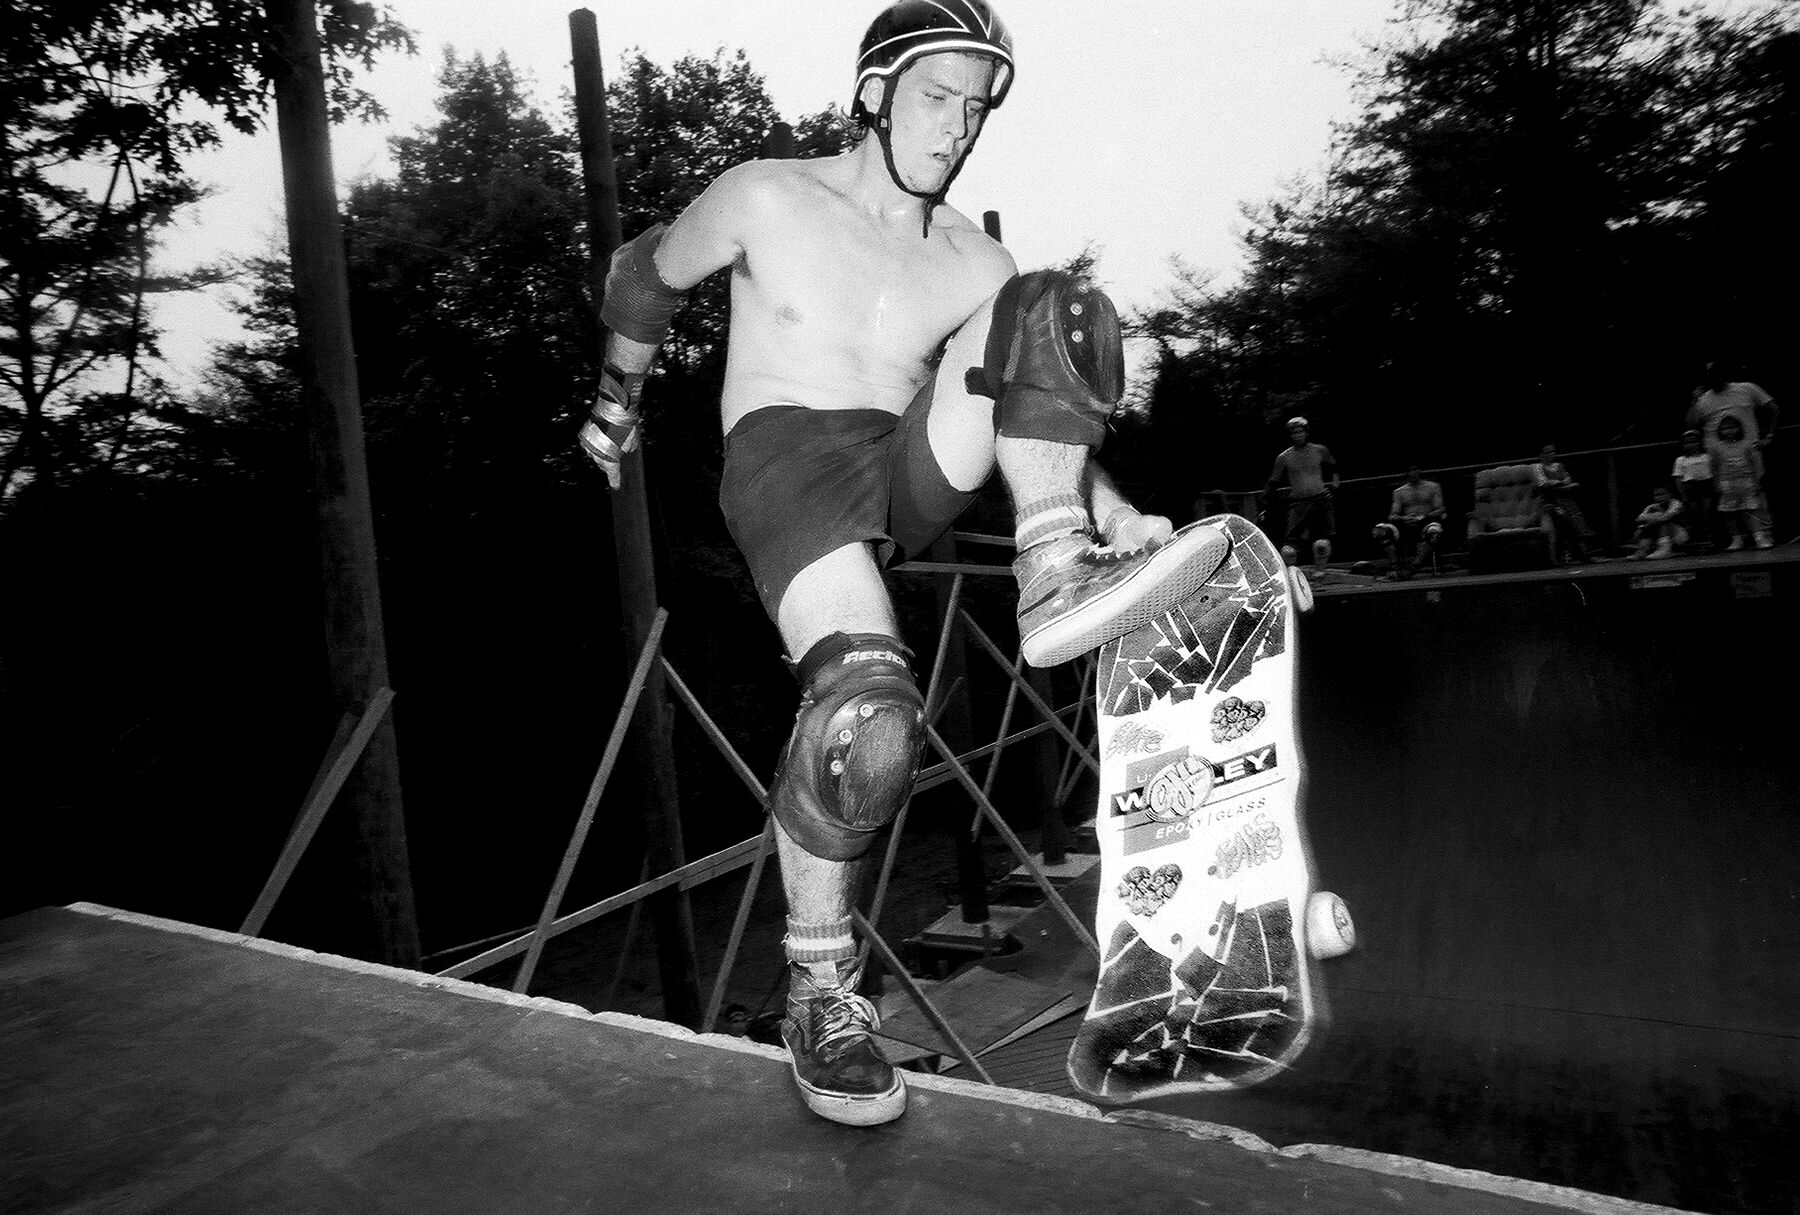 Film searches for forgotten skating, music mecca in Centreville | WTOP